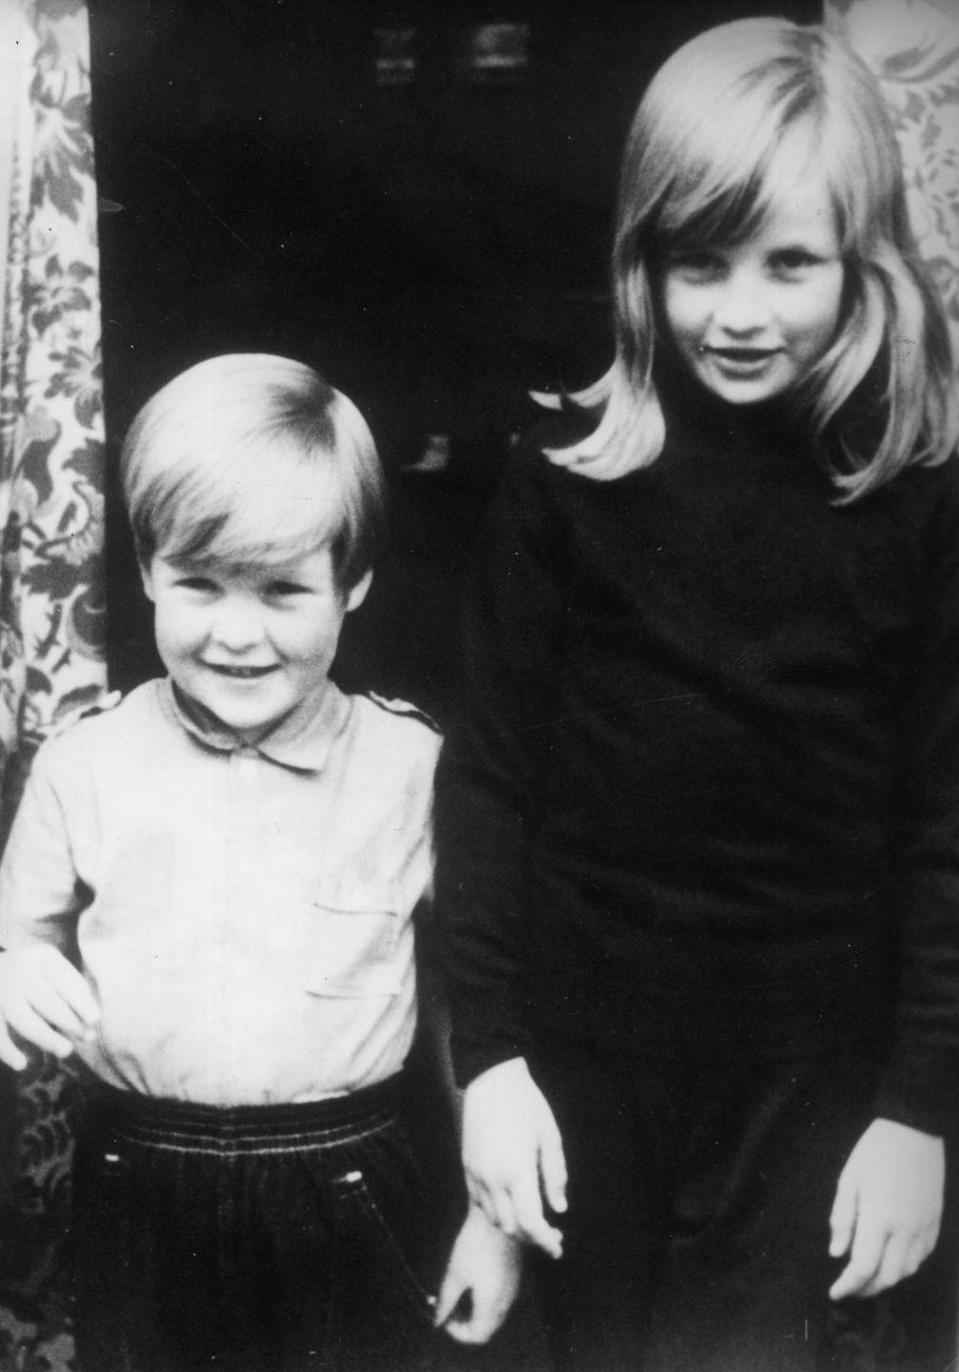 "<p>Diana with her brother Charles at their home in Berkshire. <br>""Diana deserves a place in history,"" Charles <a href=""http://abcnews.go.com/Entertainment/princess-dianas-brother-speaks-special-person-beautiful/story?id=48339064"" rel=""nofollow noopener"" target=""_blank"" data-ylk=""slk:would say"" class=""link rapid-noclick-resp"">would say</a> after her death. ""This was a special person, and not just a beautiful one.""</p>"